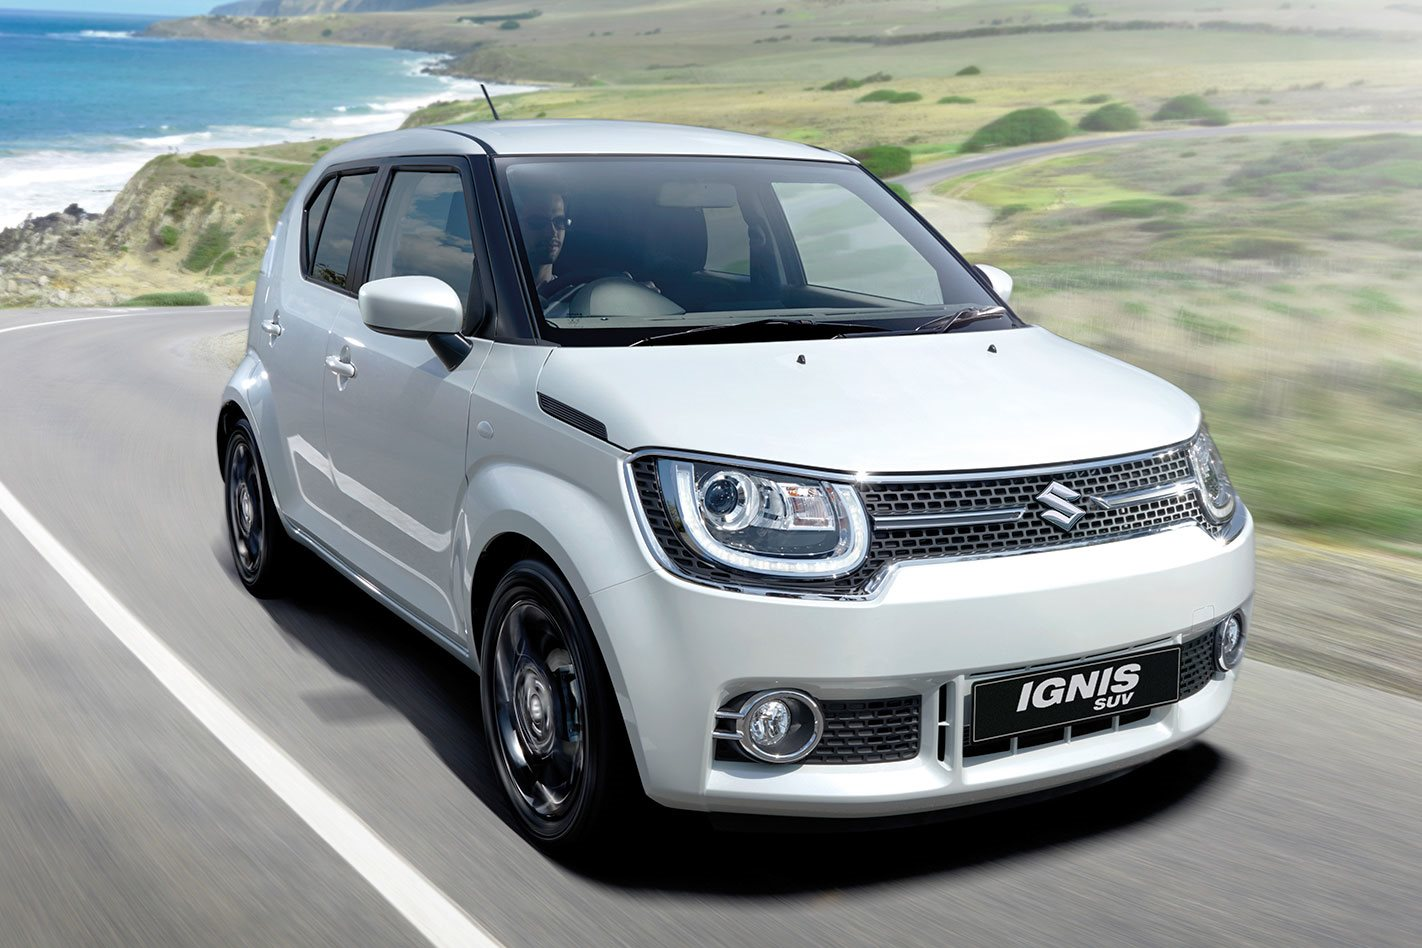 2017 suzuki ignis review. Black Bedroom Furniture Sets. Home Design Ideas